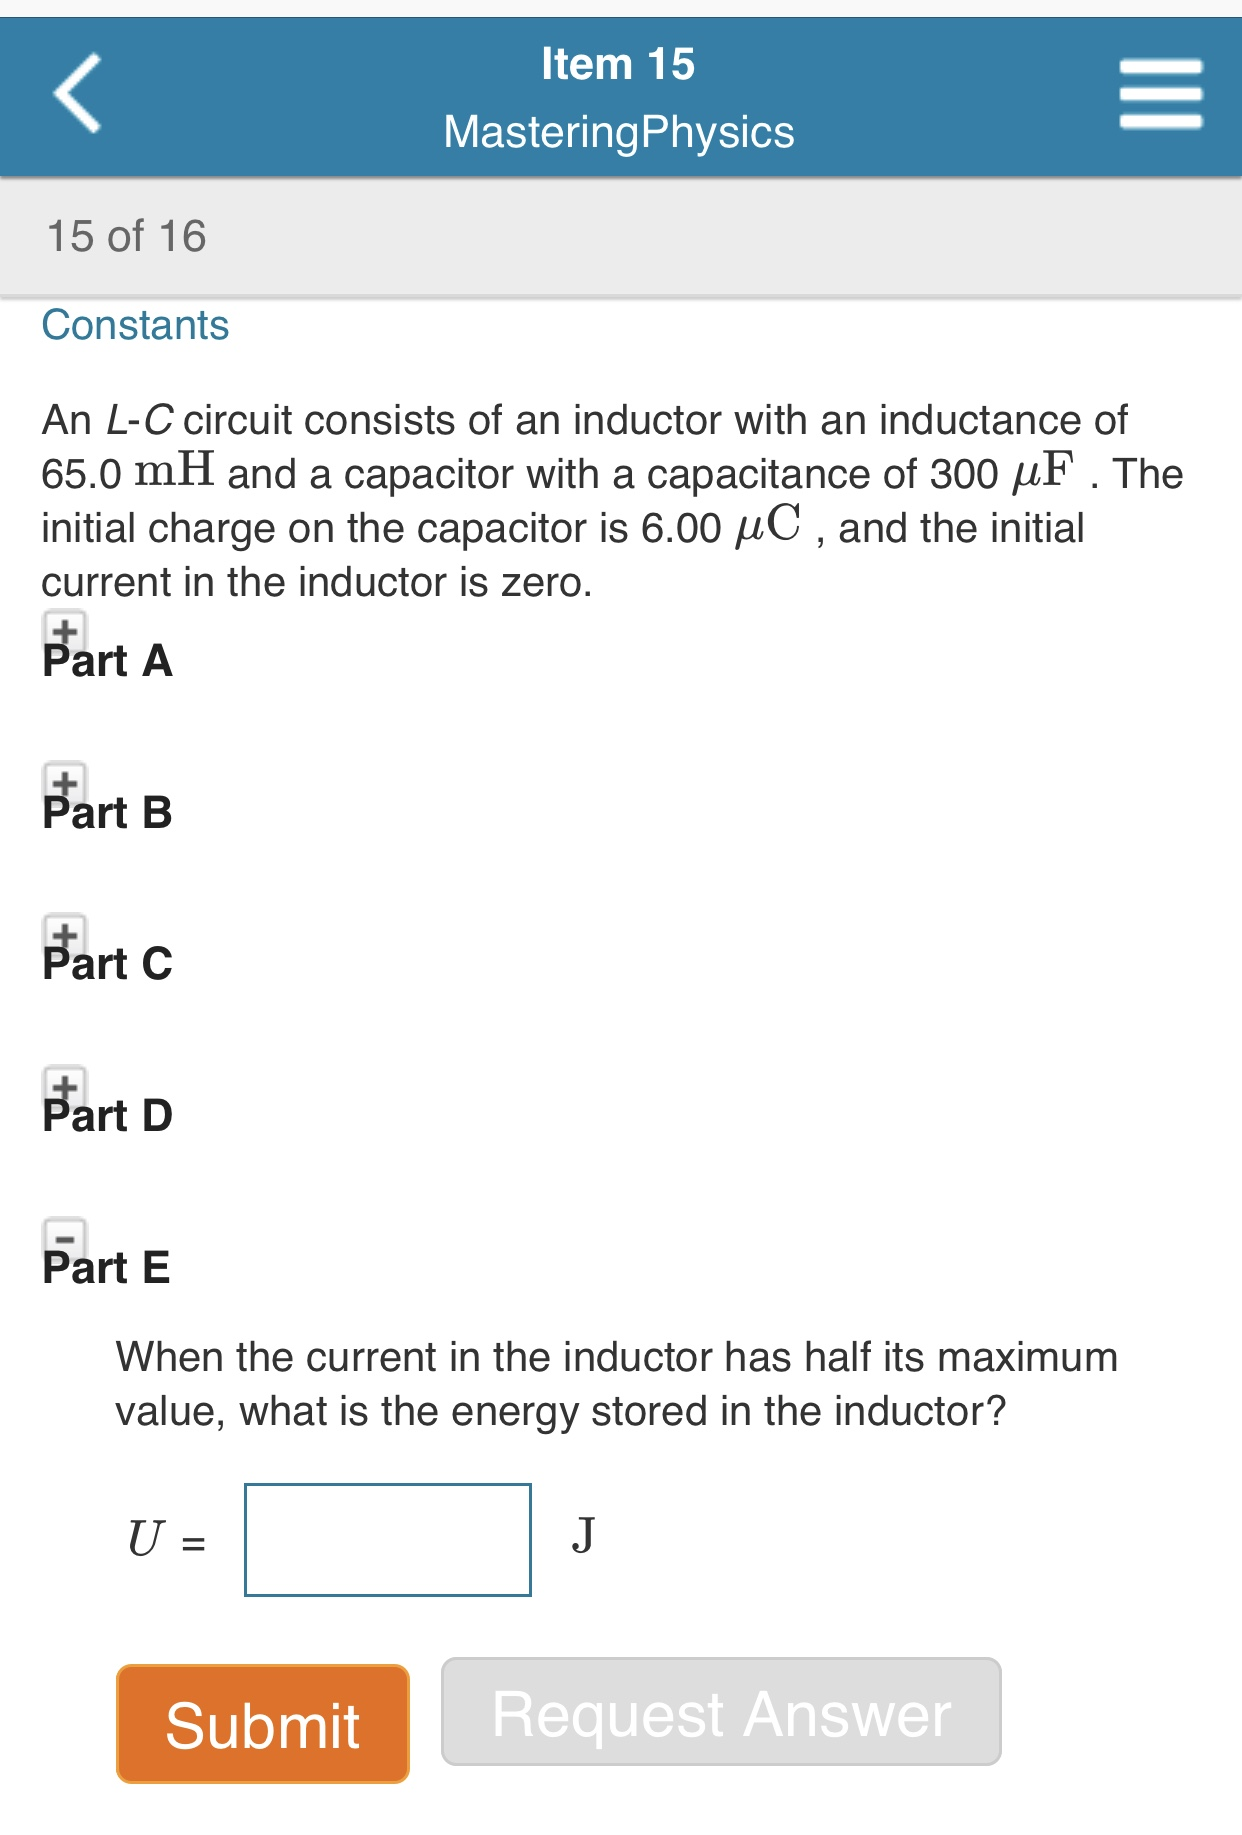 Item 15 MasteringPhysics 15 of 16 Constants An L-C circuit consists of an inductor with an inductance of 65.0 mH and a capacitor with a capacitance of 300 F. The initial charge on the capacitor is 6.00 HC, and the initial current in the inductor is zero. Part A Part B Part C Part D Part E When the current in the inductor has half its maximum value, what is the energy stored in the inductor? J U = 1 Request Answer Submit II